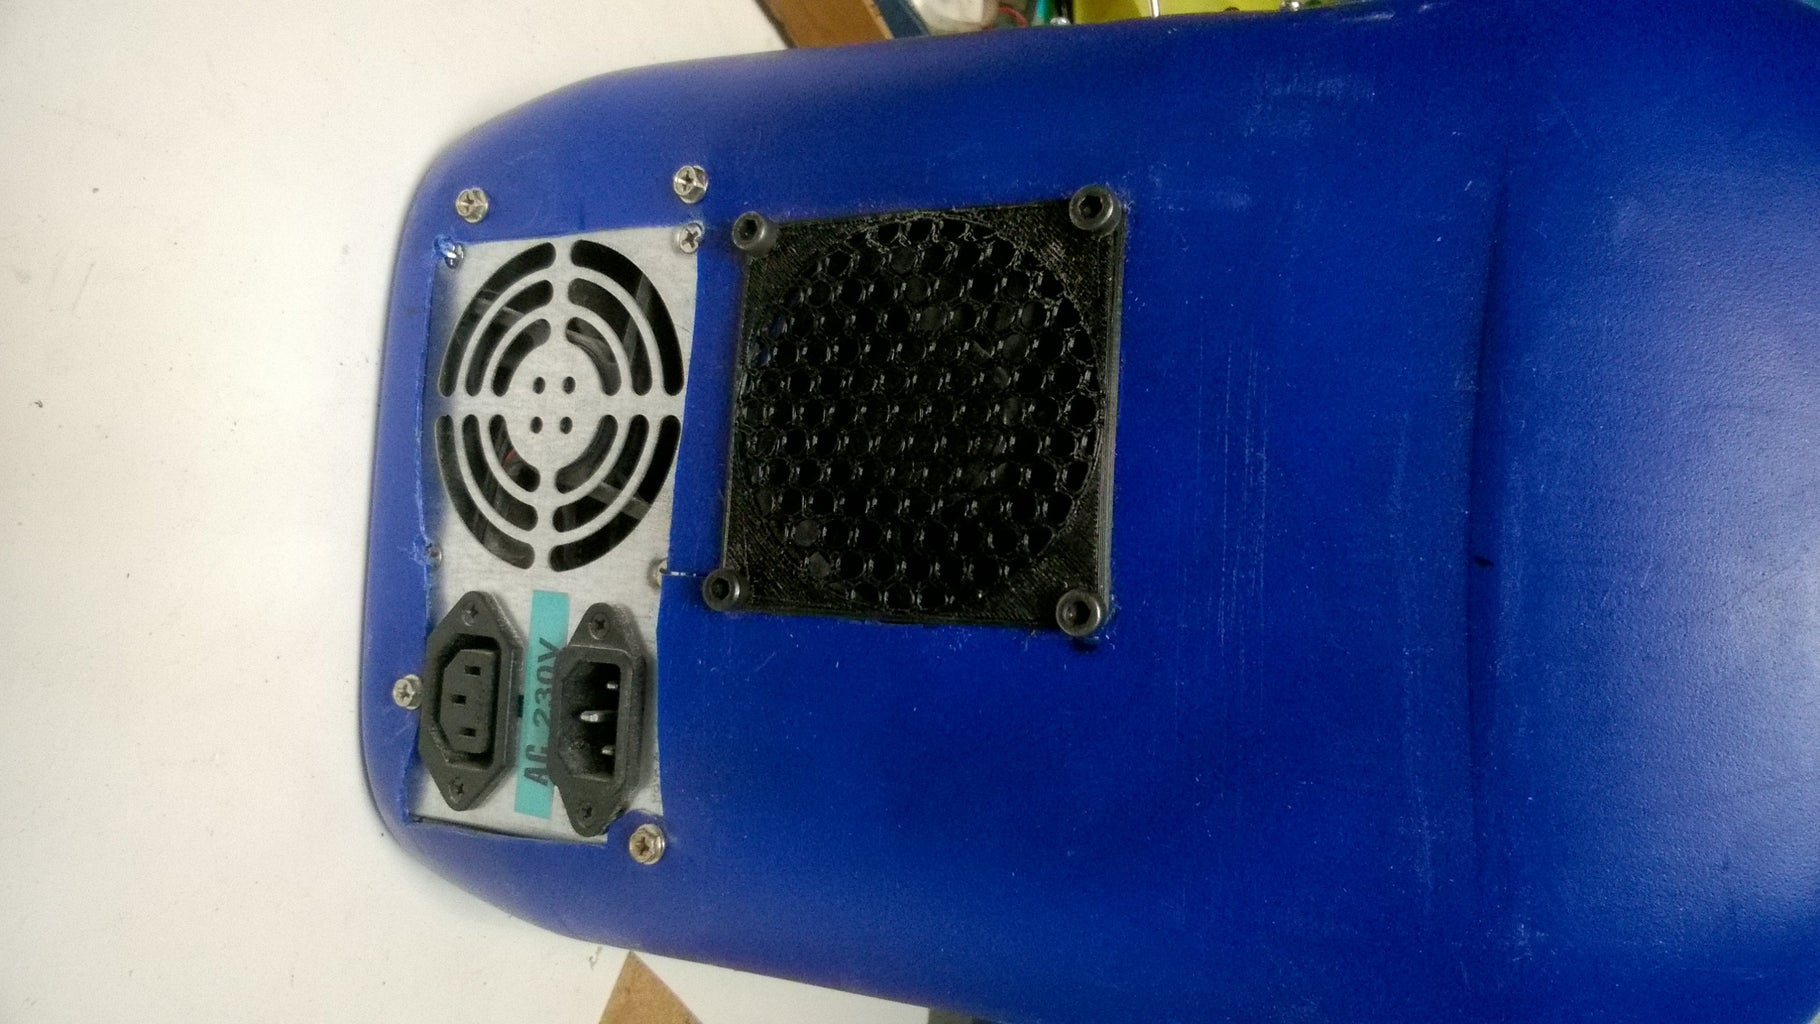 Fitting the Power Supply and Fan